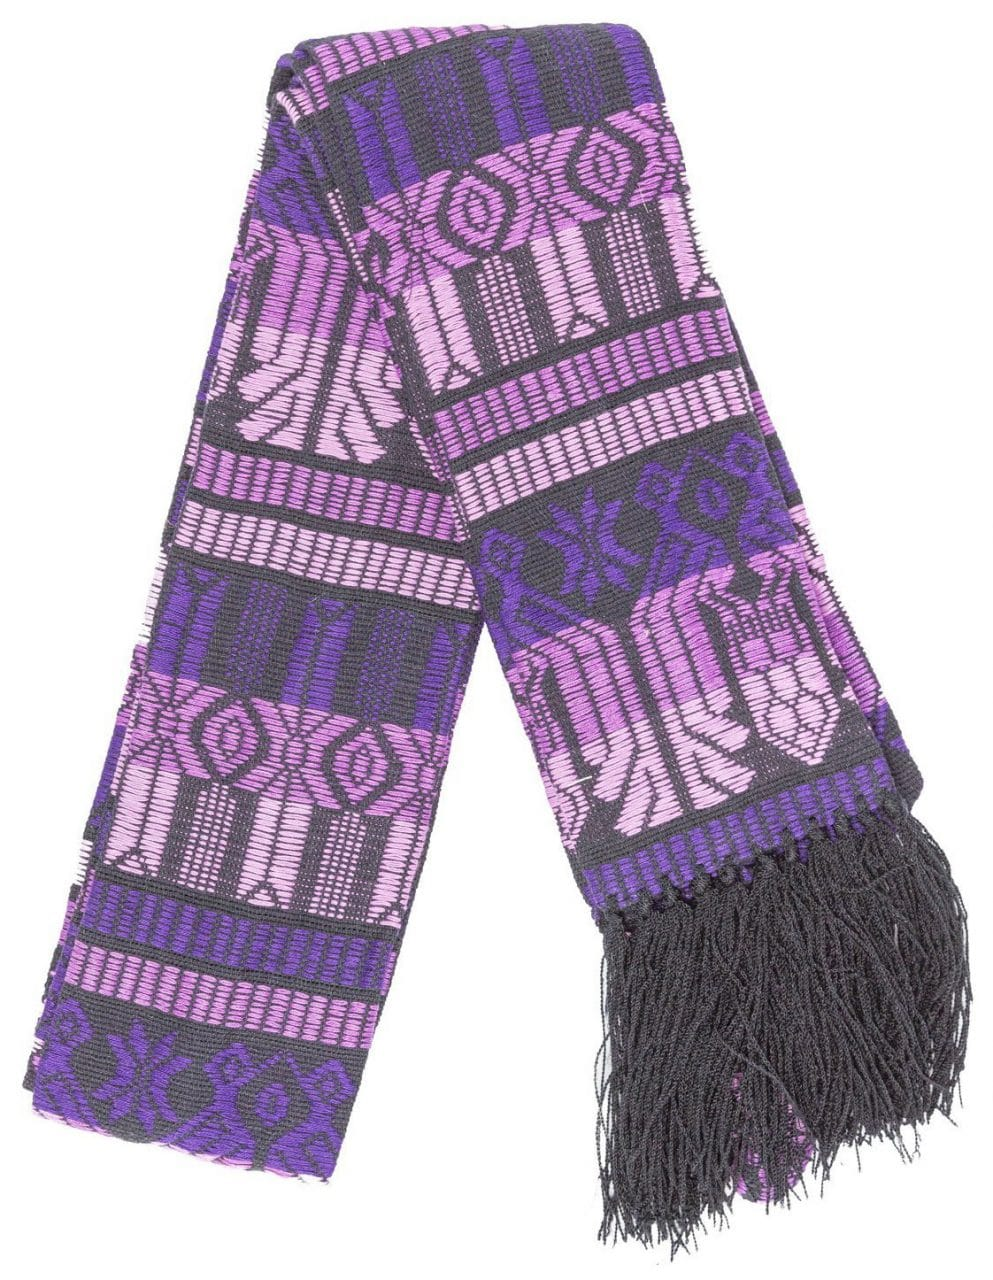 Brocaded Clerical Stole - Purple